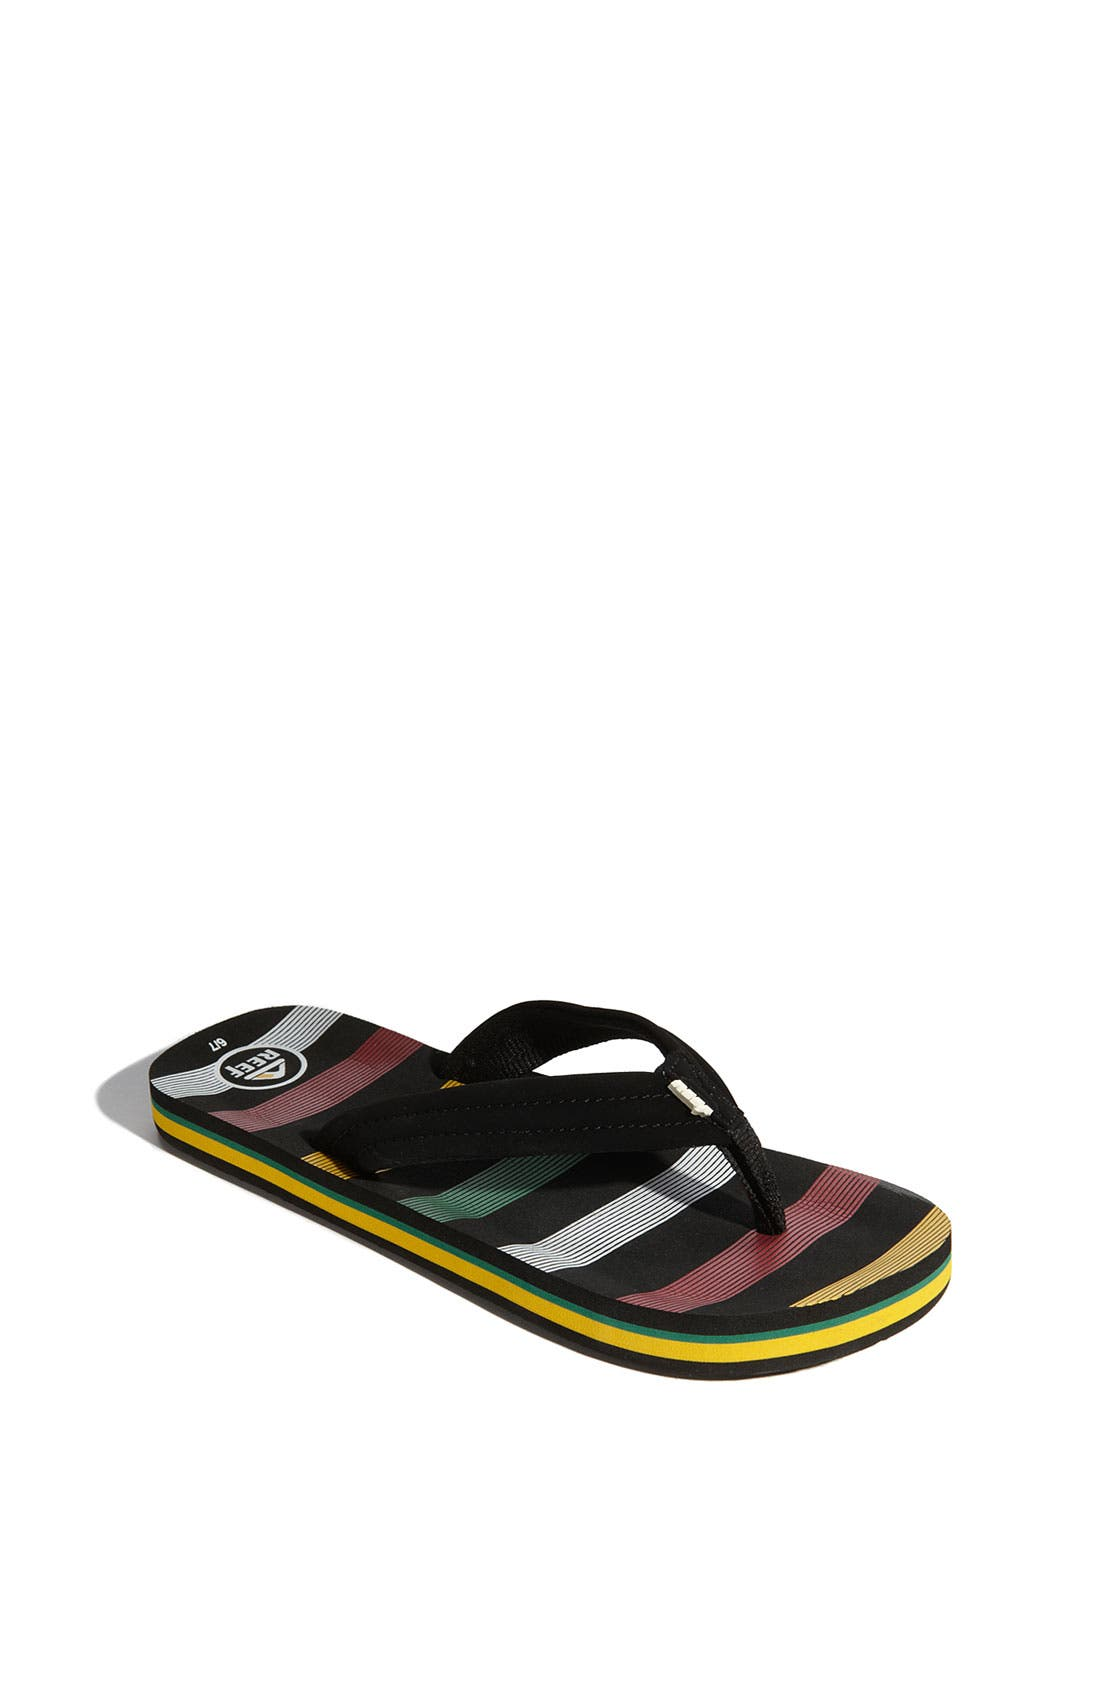 Main Image - Reef 'Ahi' Sandal (Walker, Toddler, Little Kid & Big Kid)